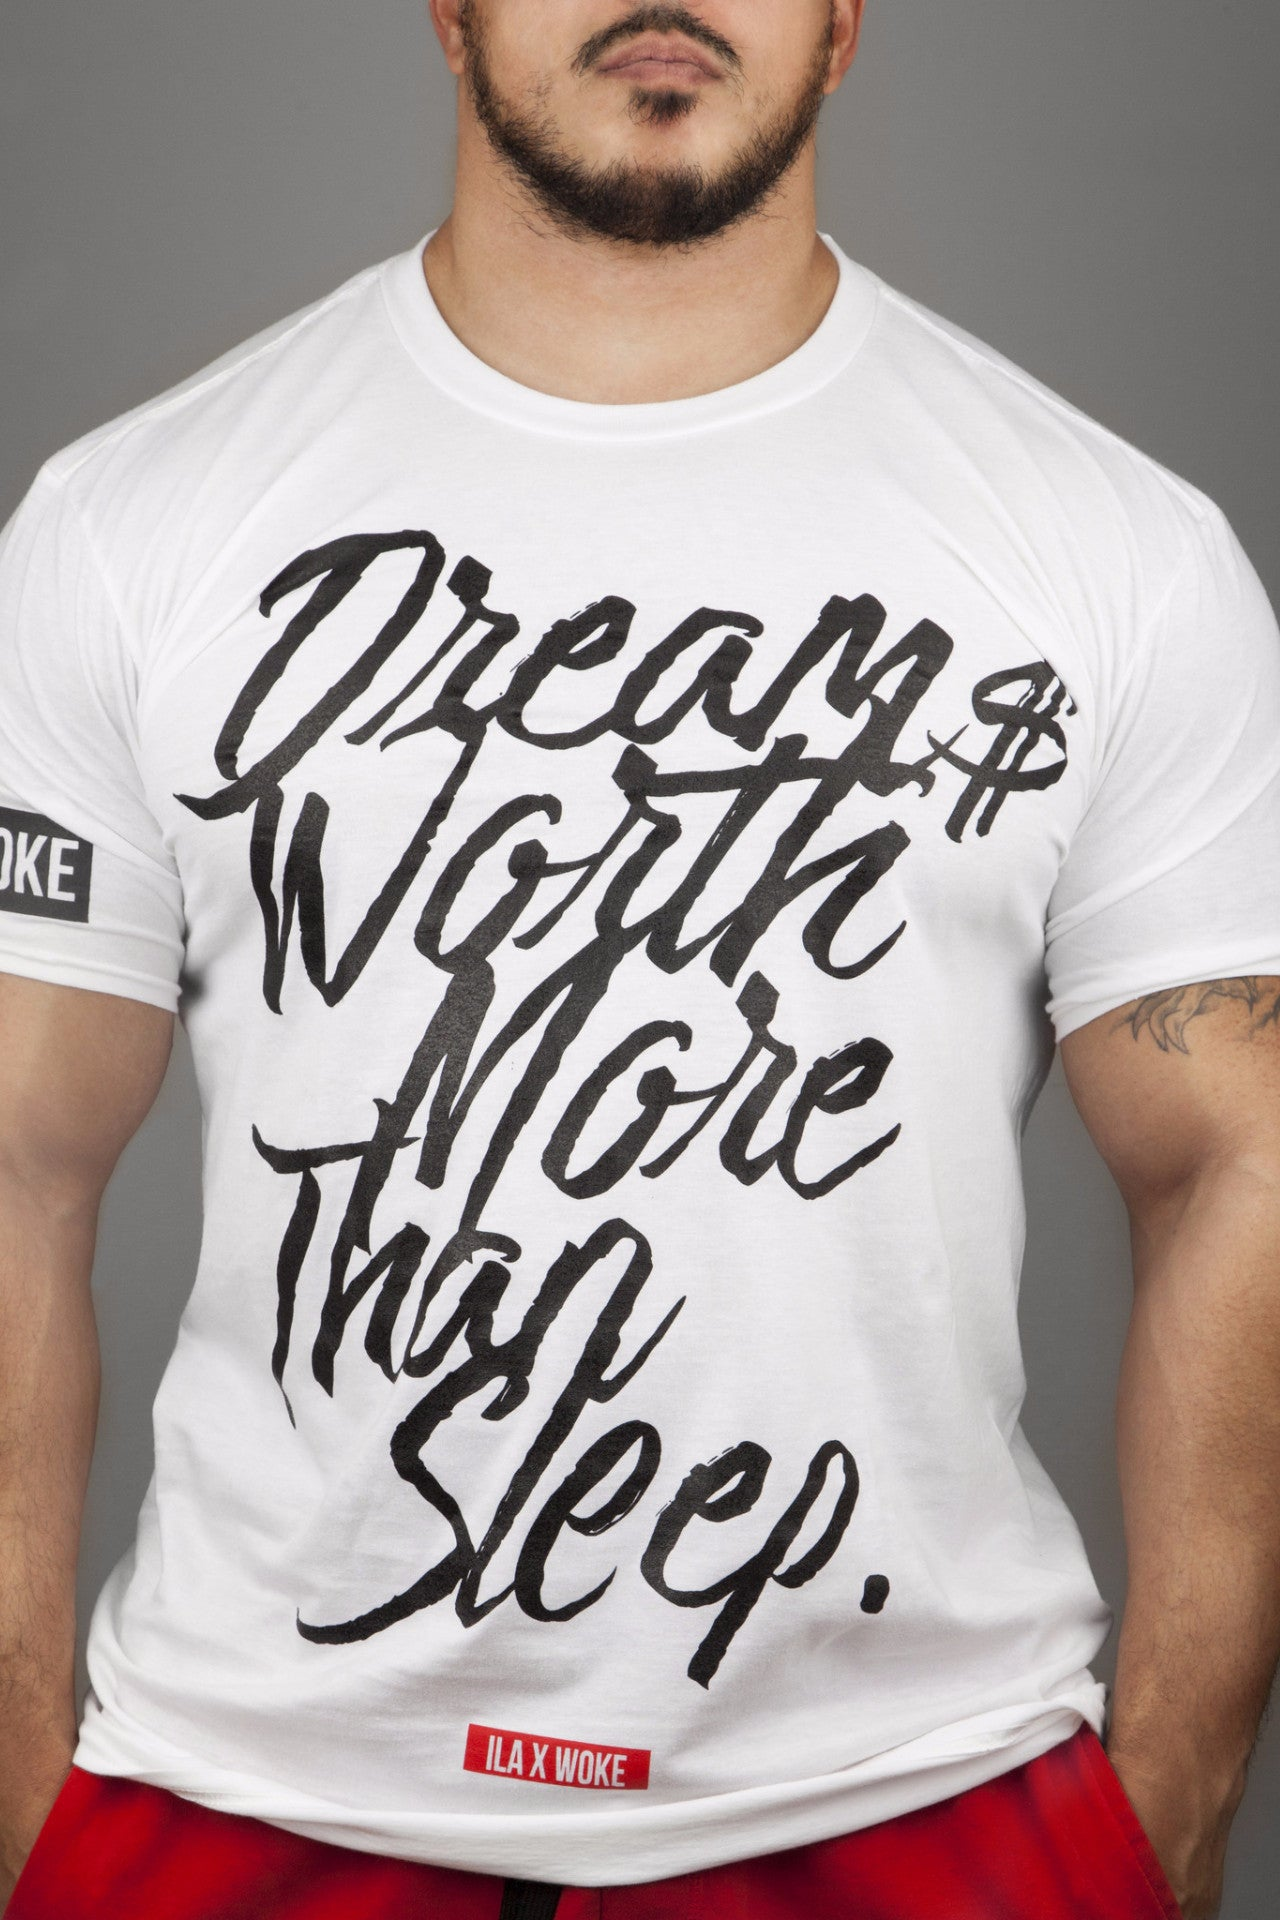 Dreams Worth More Than Sleep Tee (White) - WOKE - 1